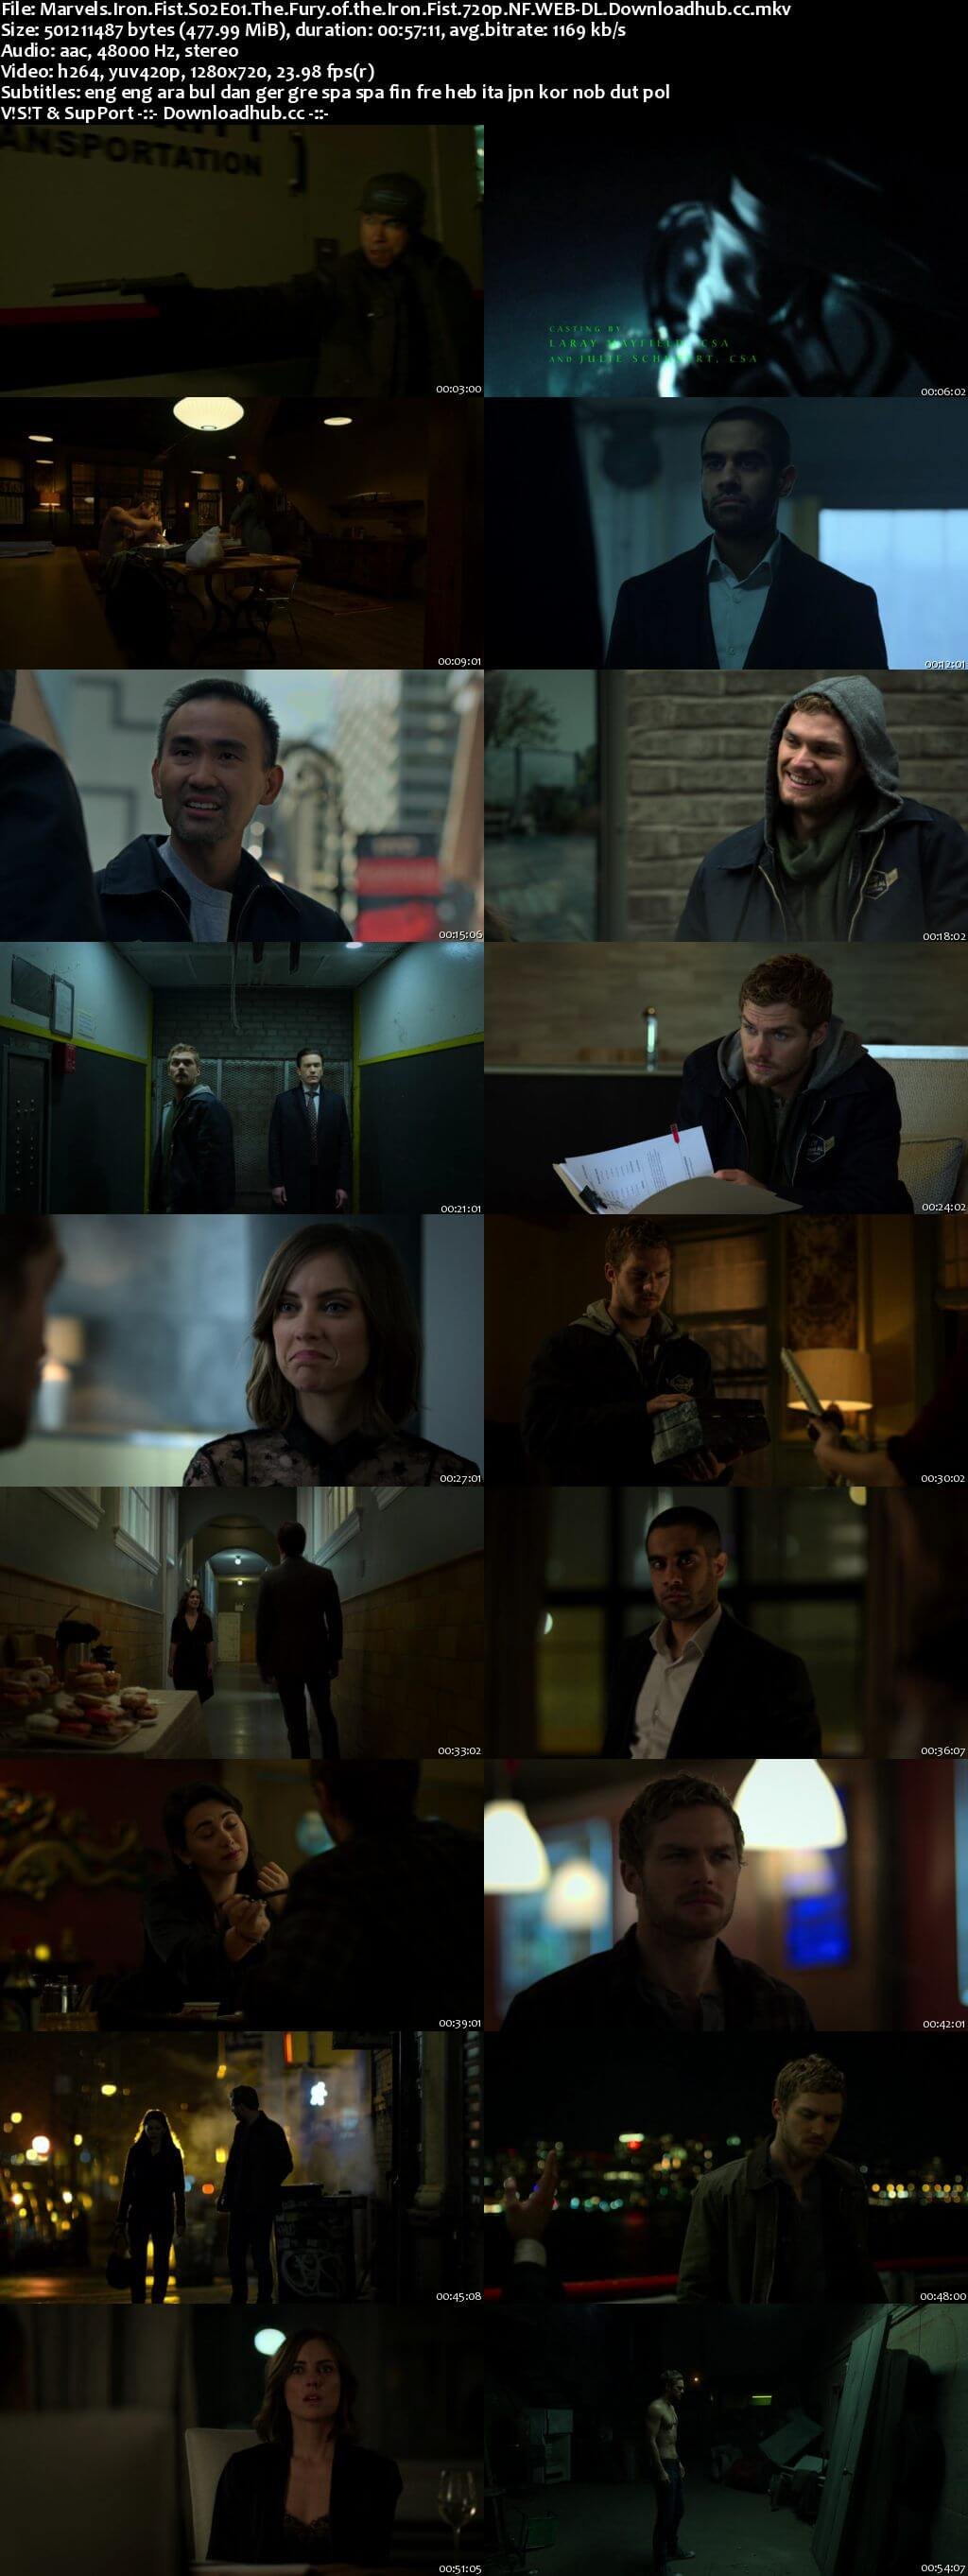 Marvels Iron Fist S02 Complete 720p NF Web-DL MSubs